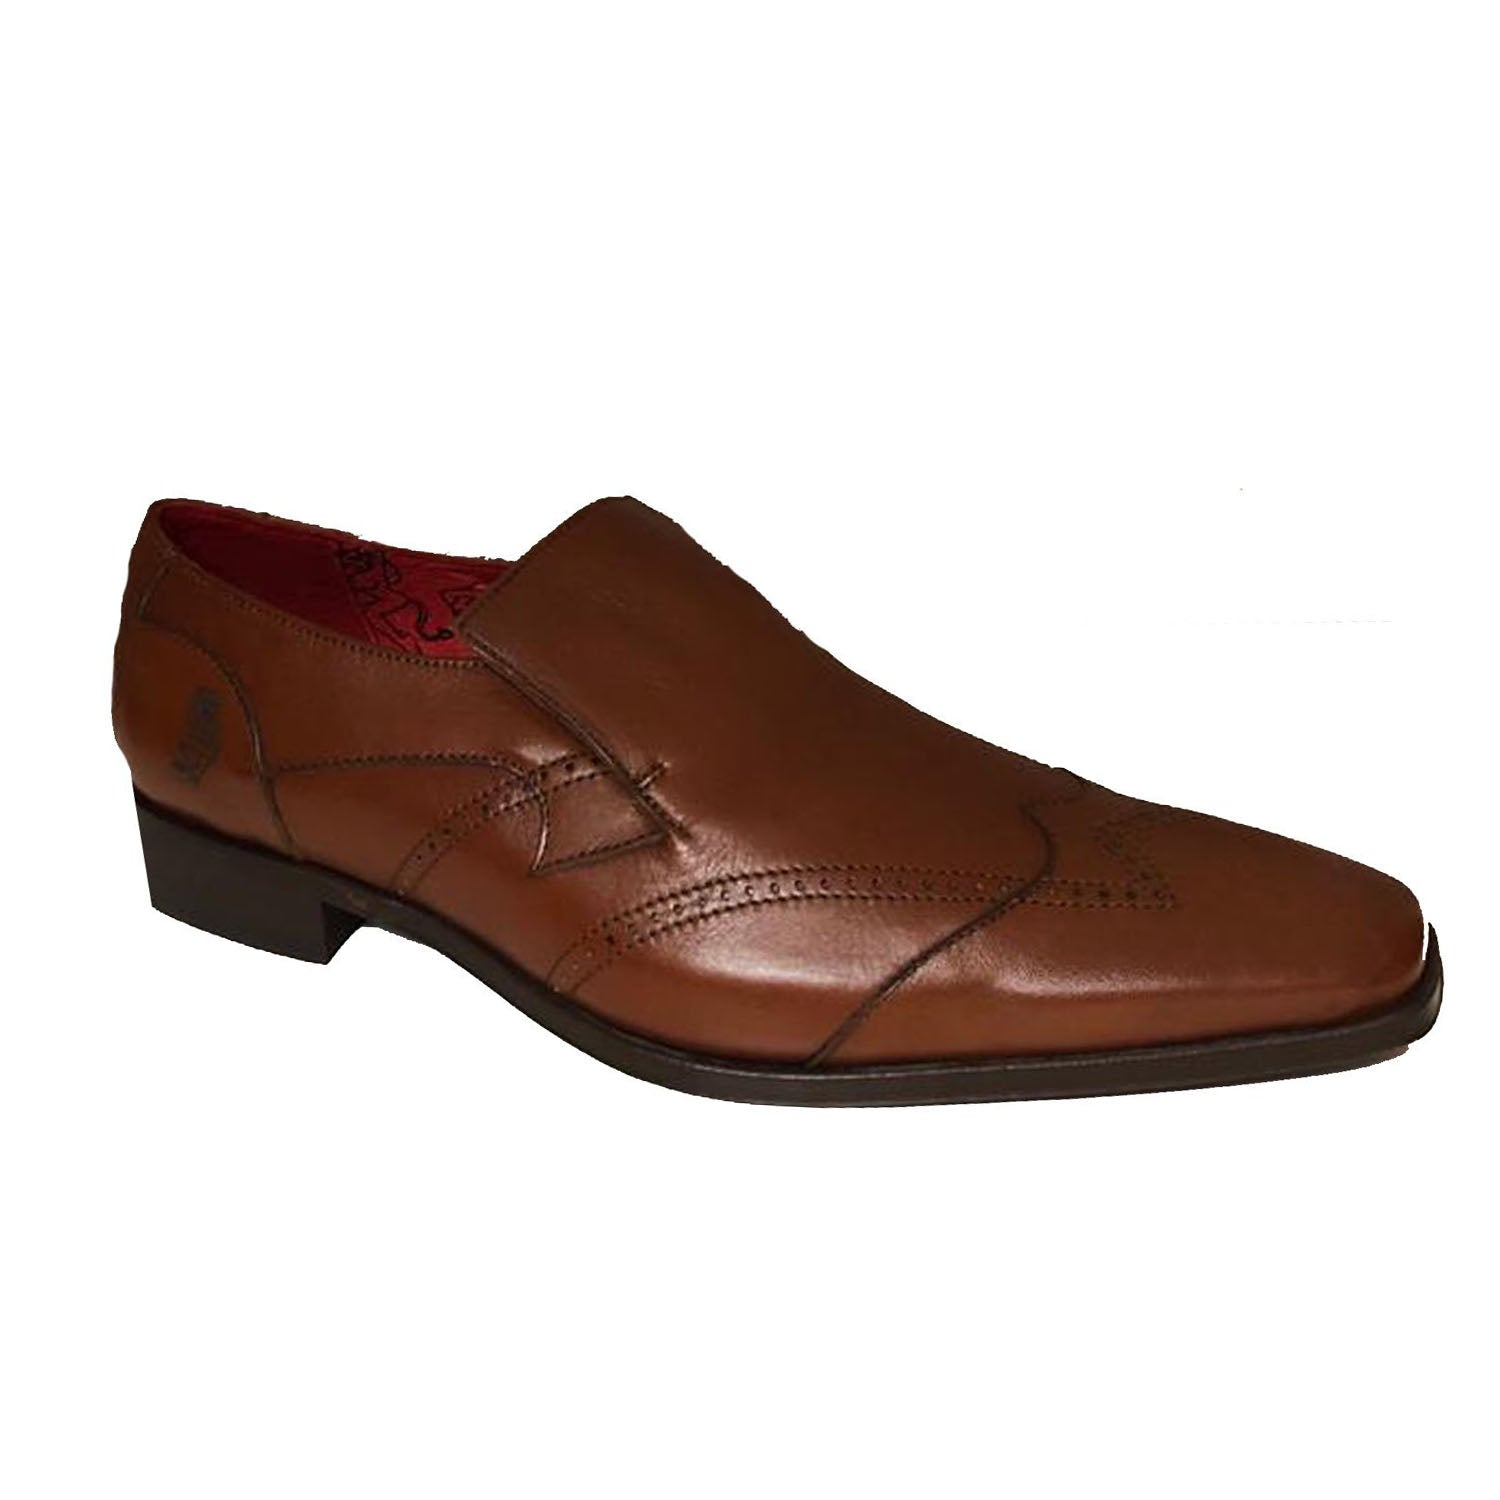 Jeffery West Damasco Tan Loafer Shoe